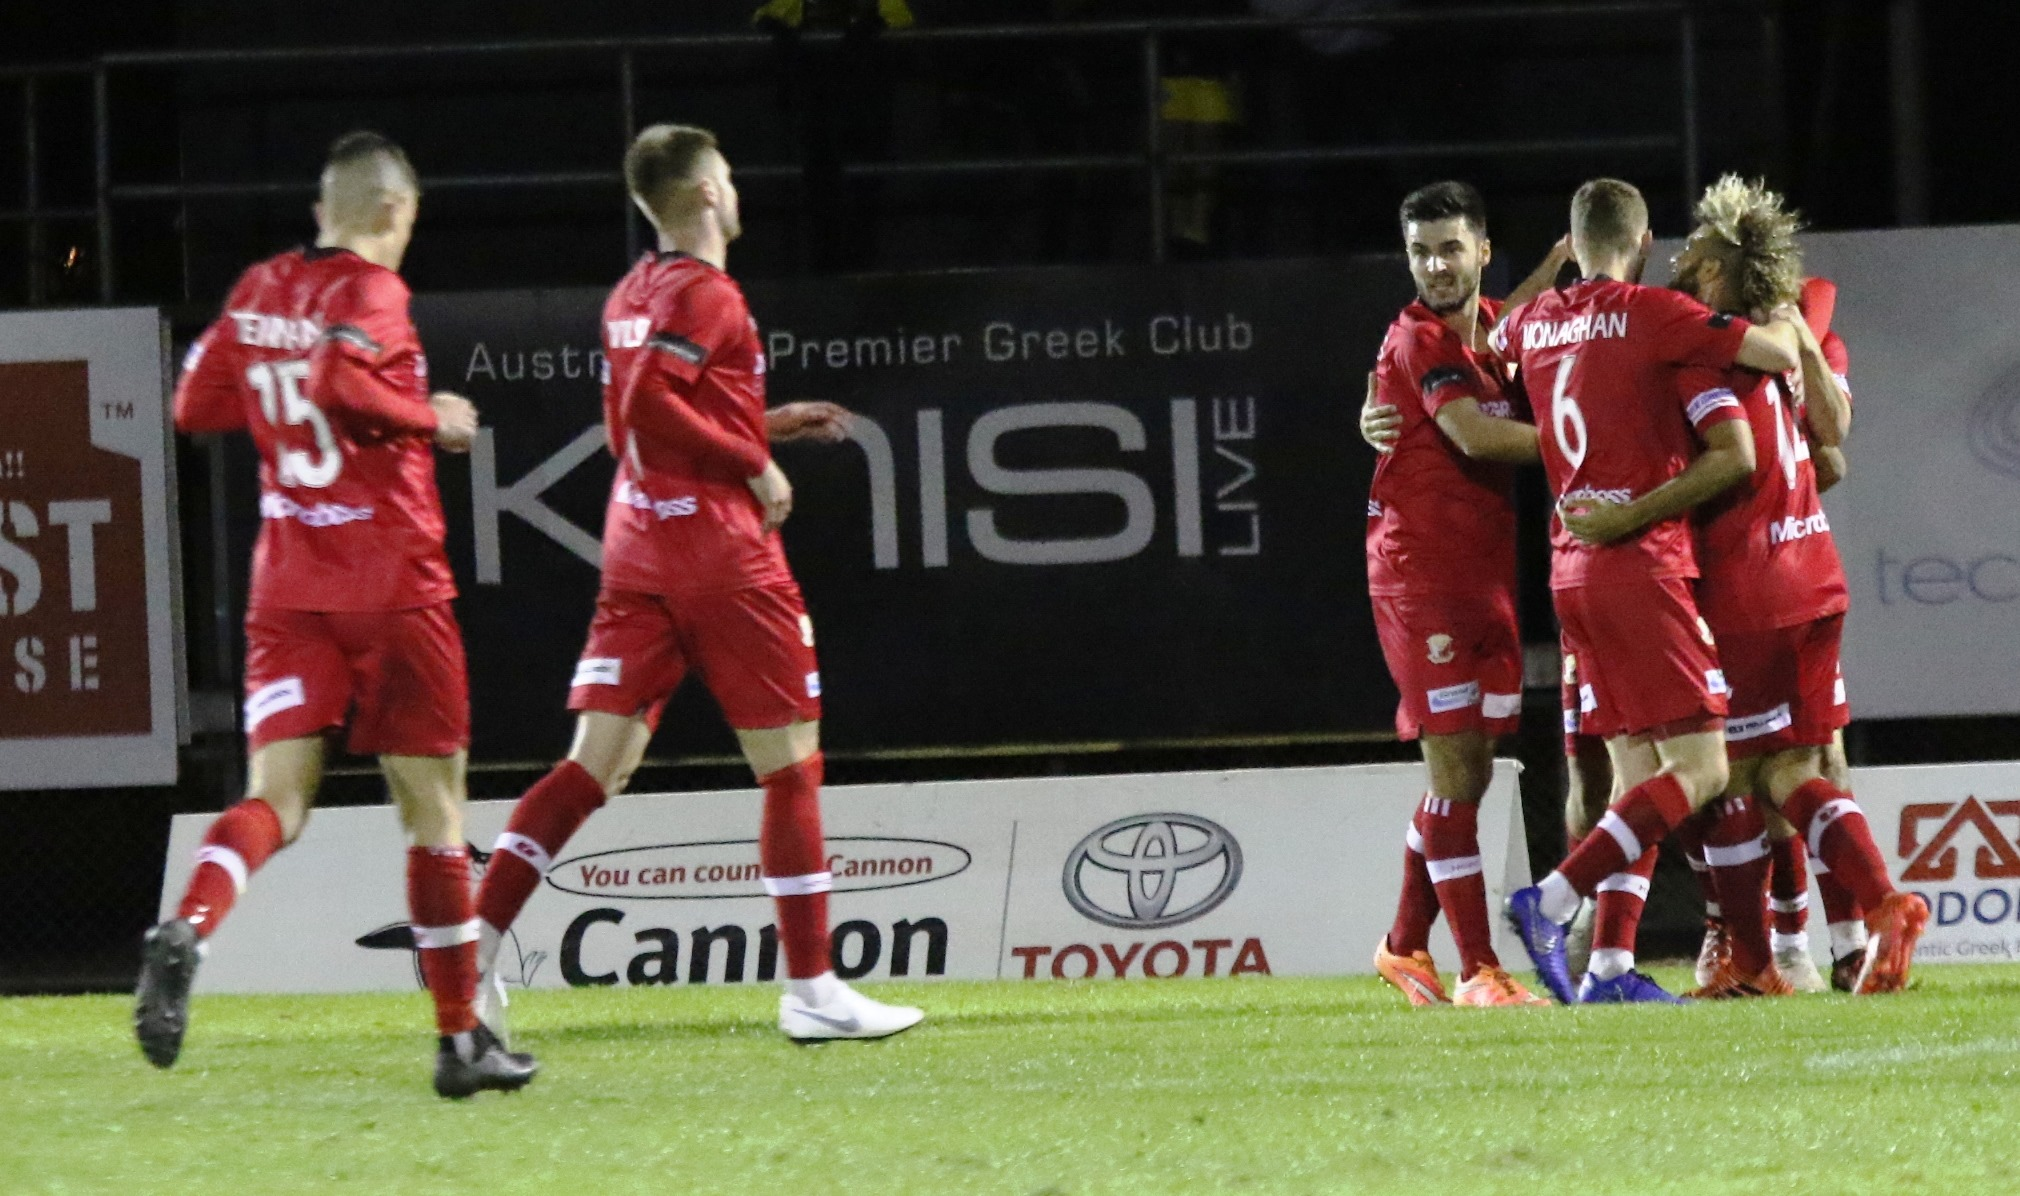 FFA Cup Round 6 Review: Nine-goal FFA Cup thriller sends Hume City through to the next round